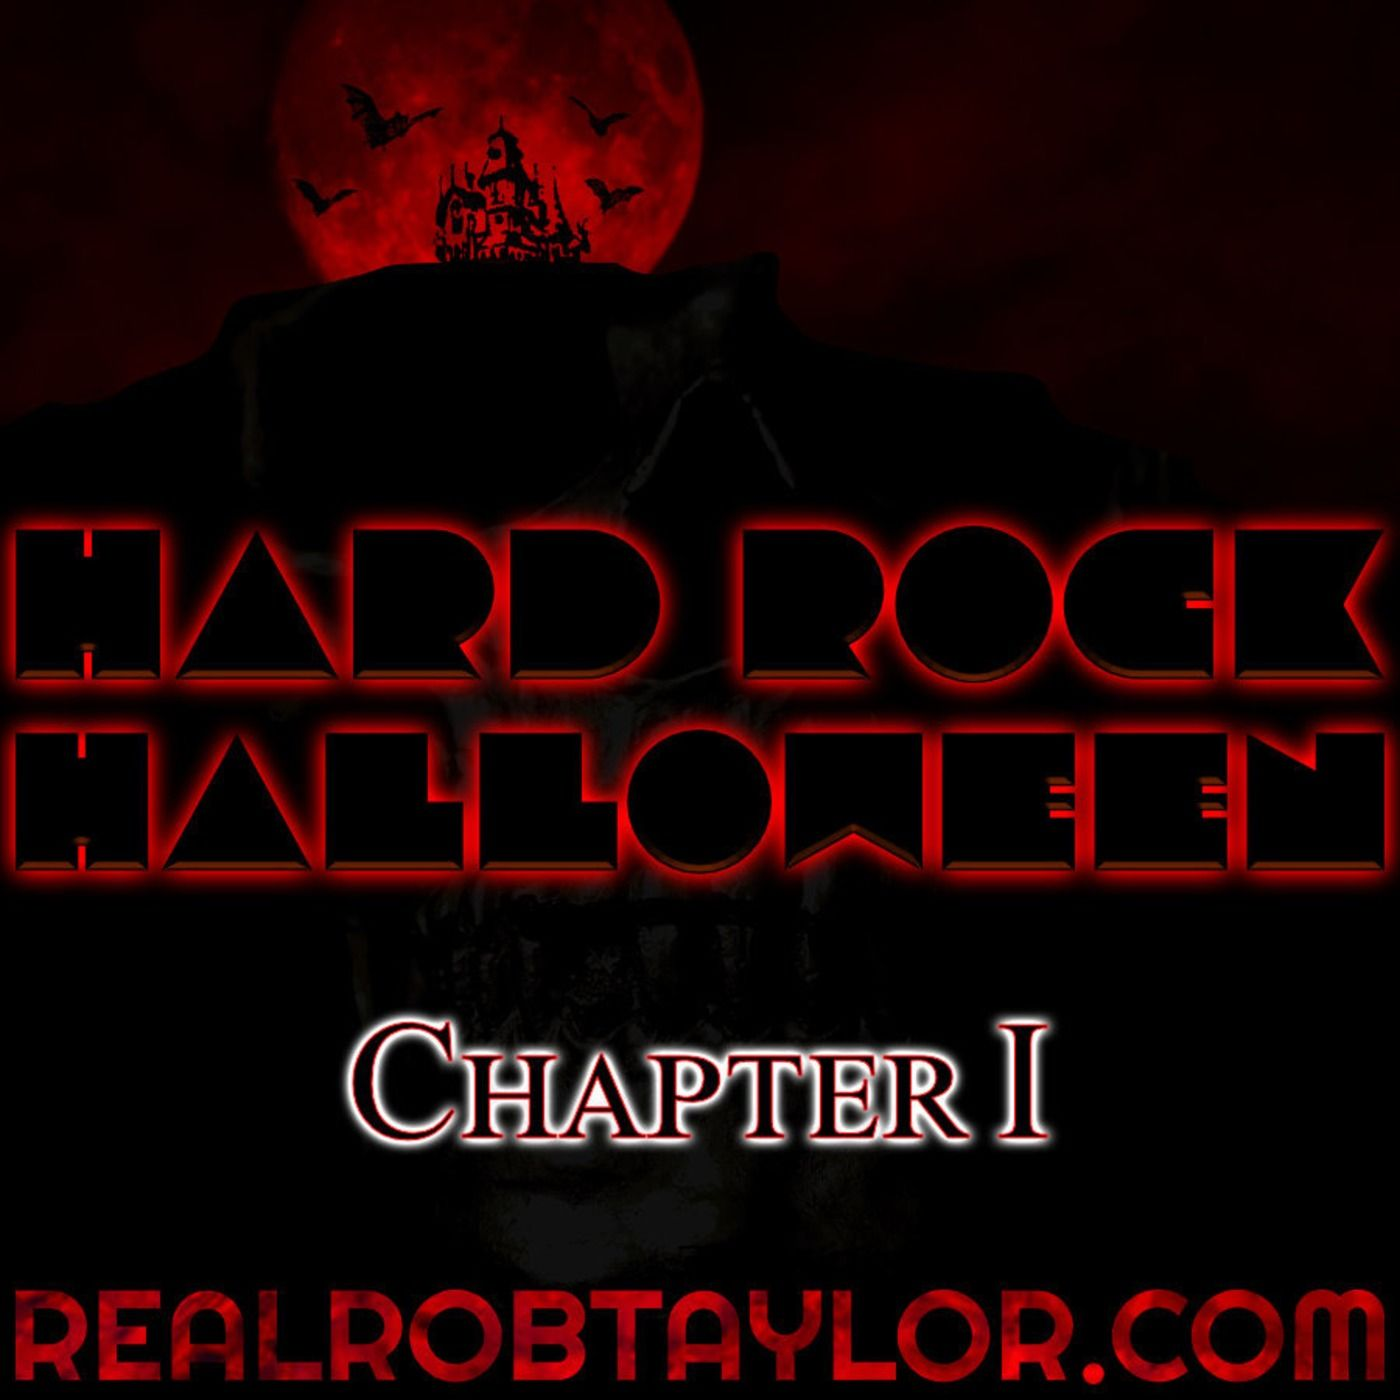 HARD ROCK HALLOWEEN - Chapter I